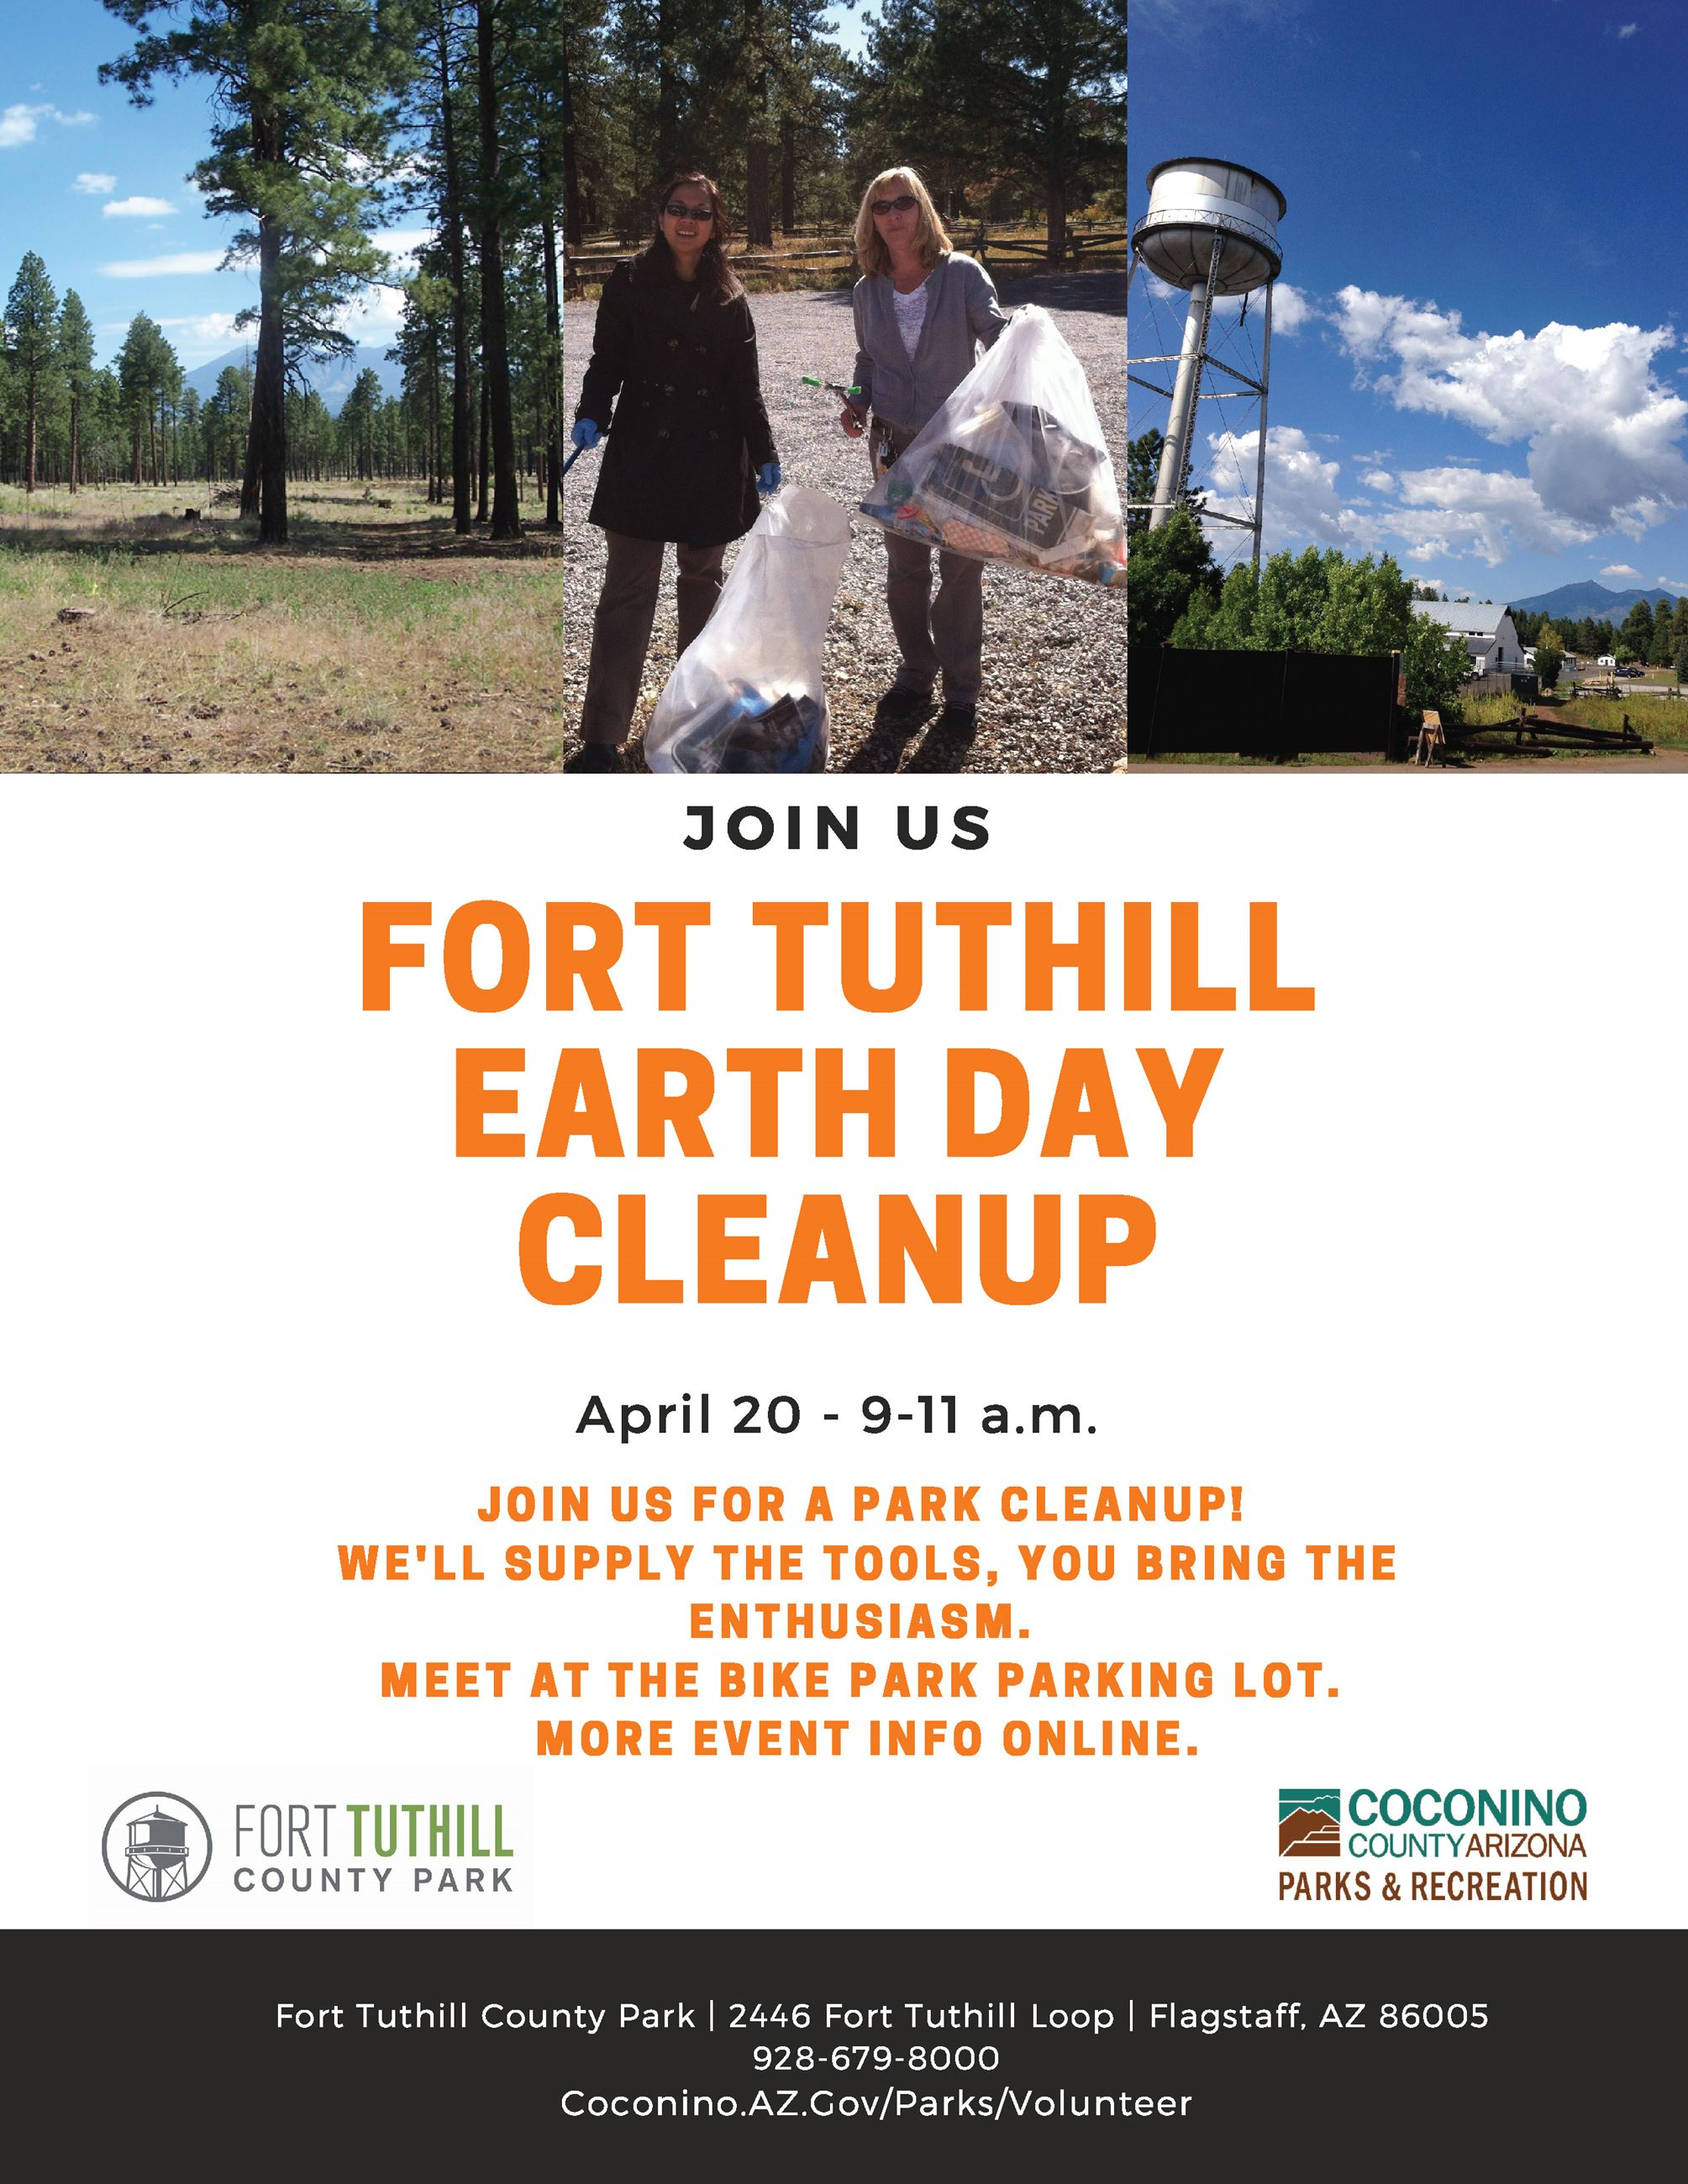 Fort Tuthill Earth Day Cleanup